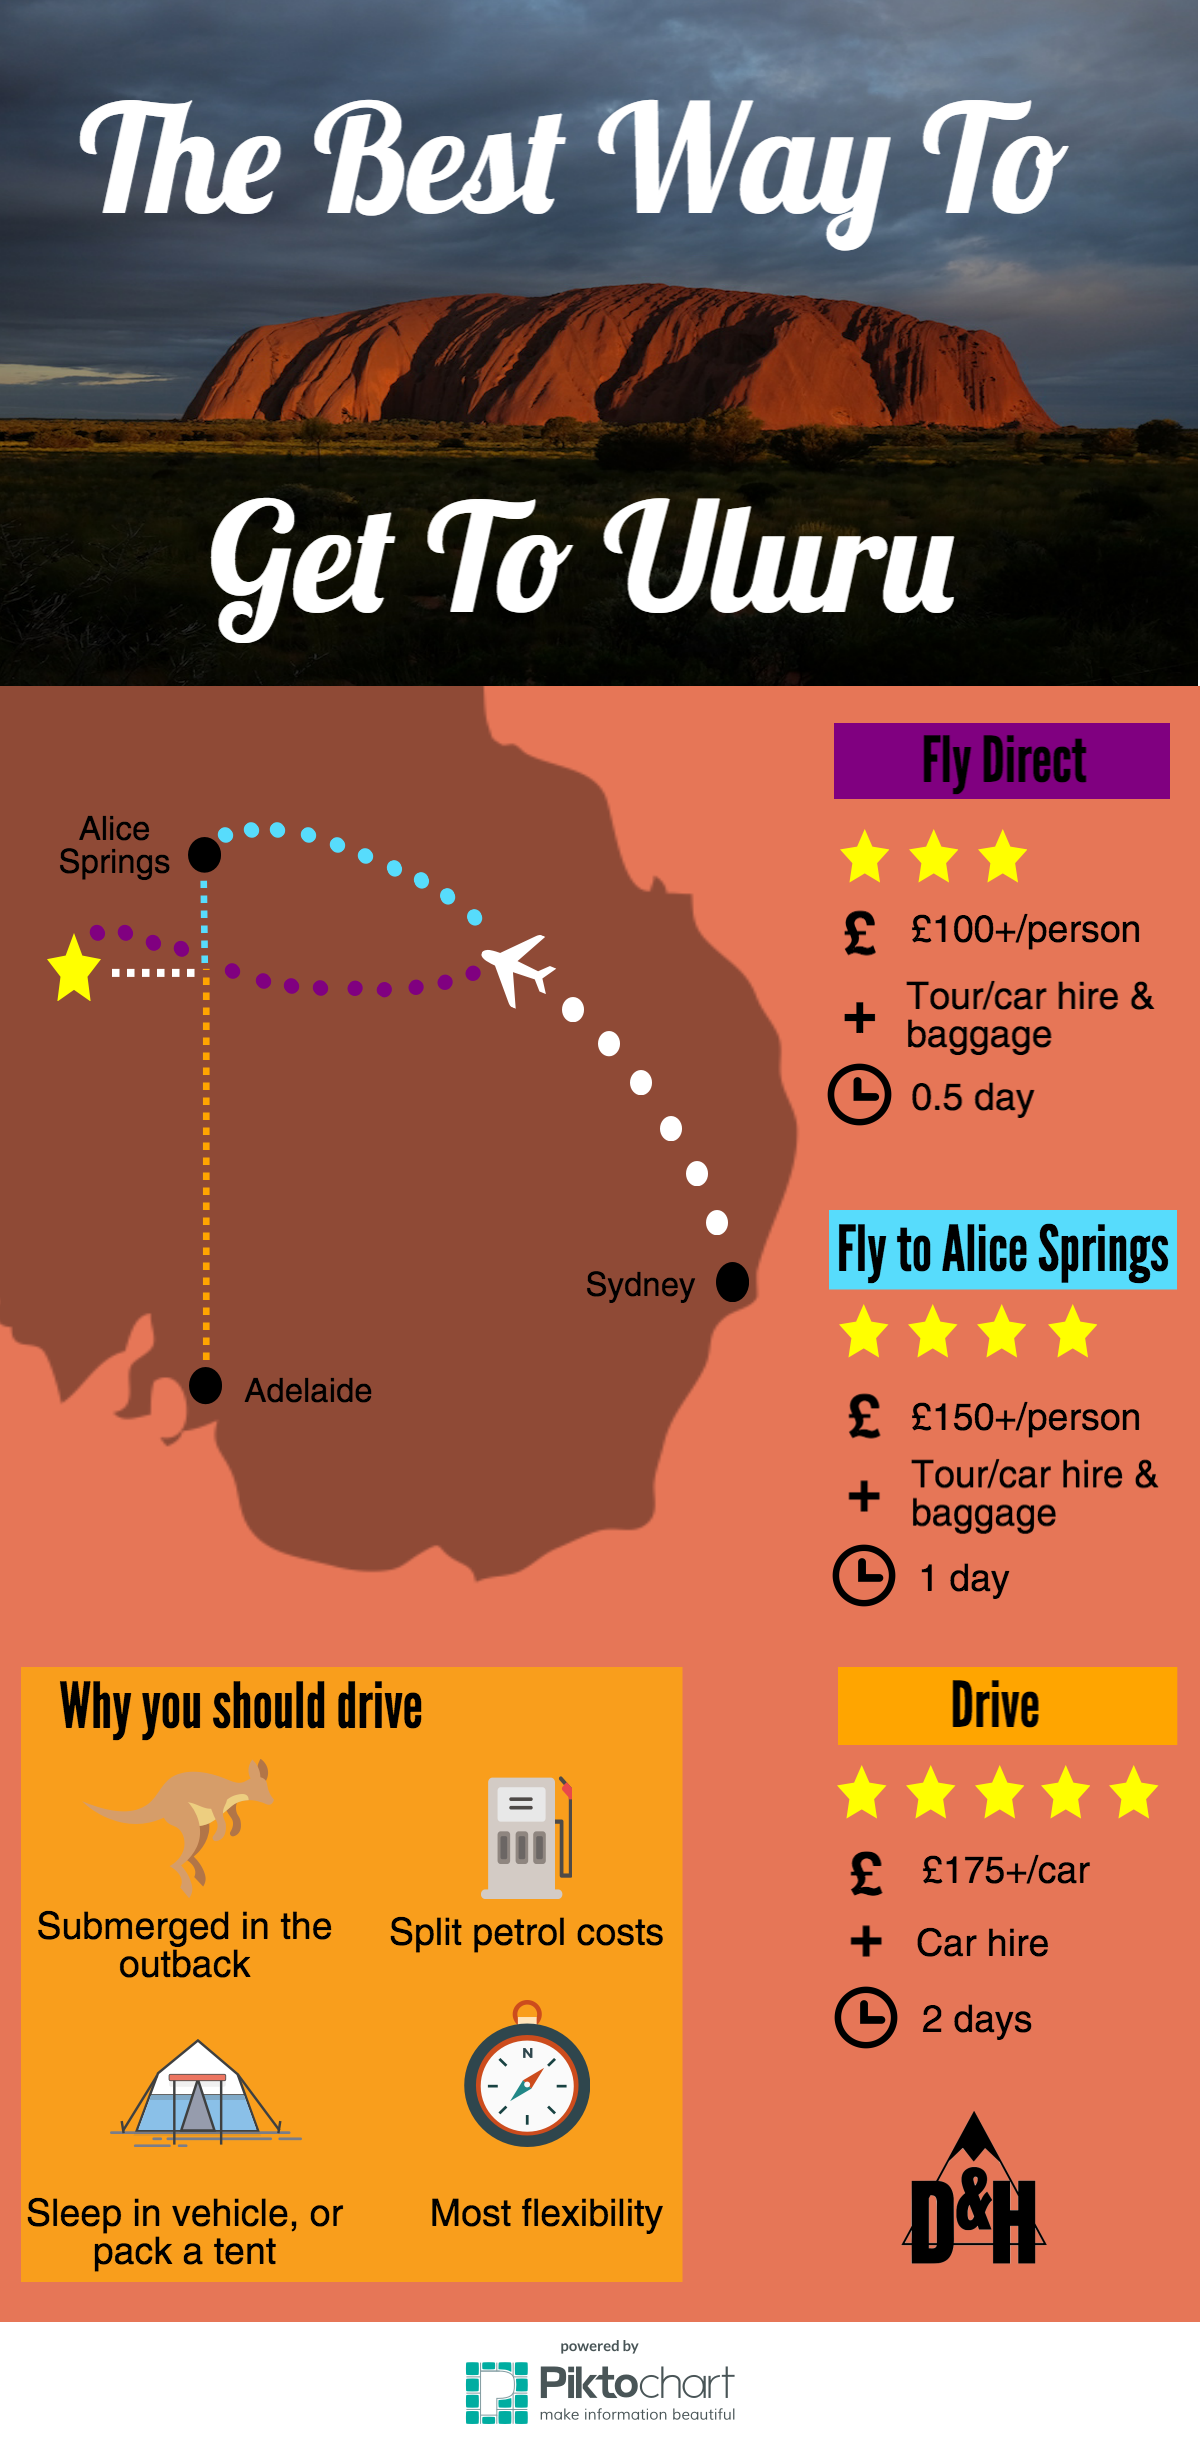 What is the best way to get to Uluru infographic